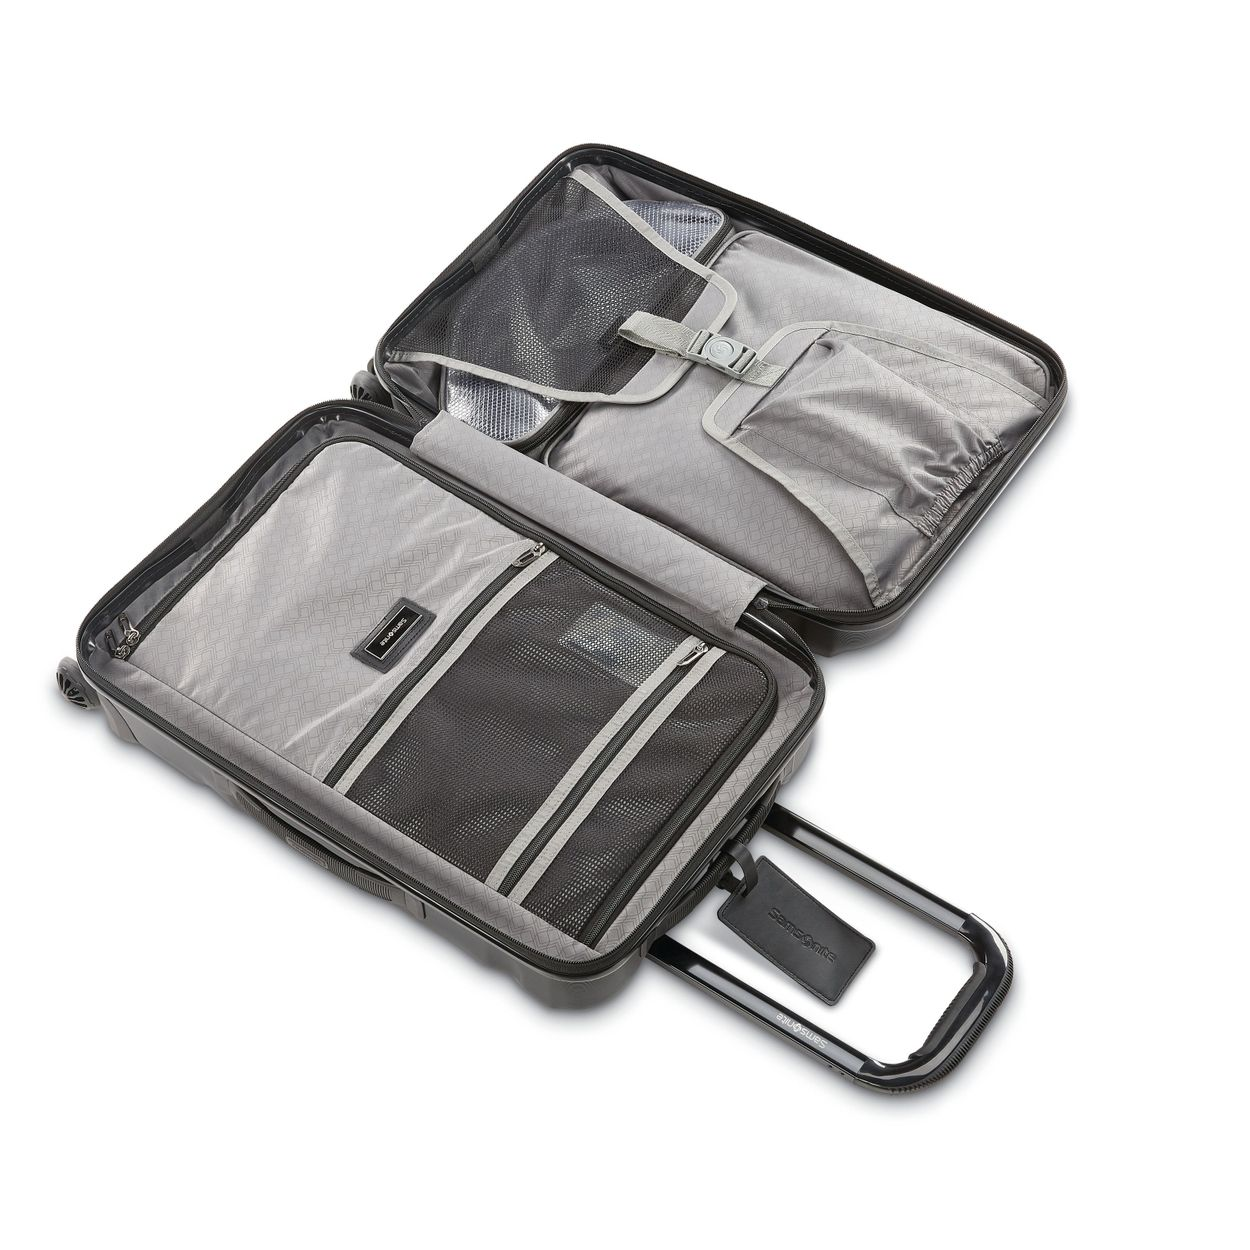 Xcalibur XLT comes complete with a large packing cube and a mesh packing cube to make organization effortless.